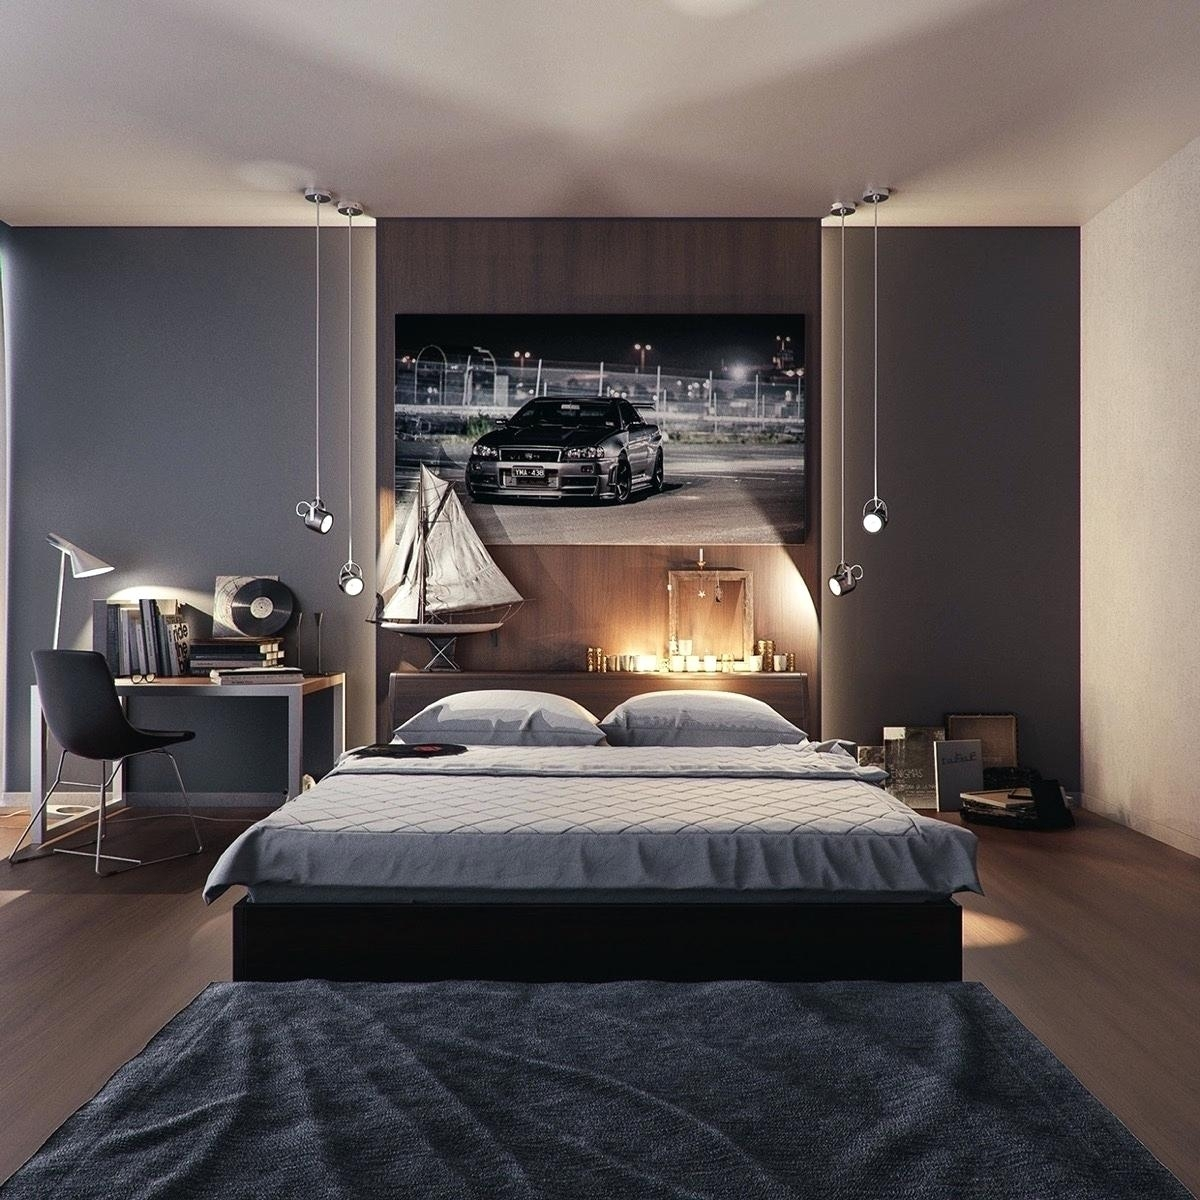 Uncategorized : Decoration Masculine Bedroom Design Manly Sets Intended For Most Recent Manly Wall Art (Gallery 18 of 20)